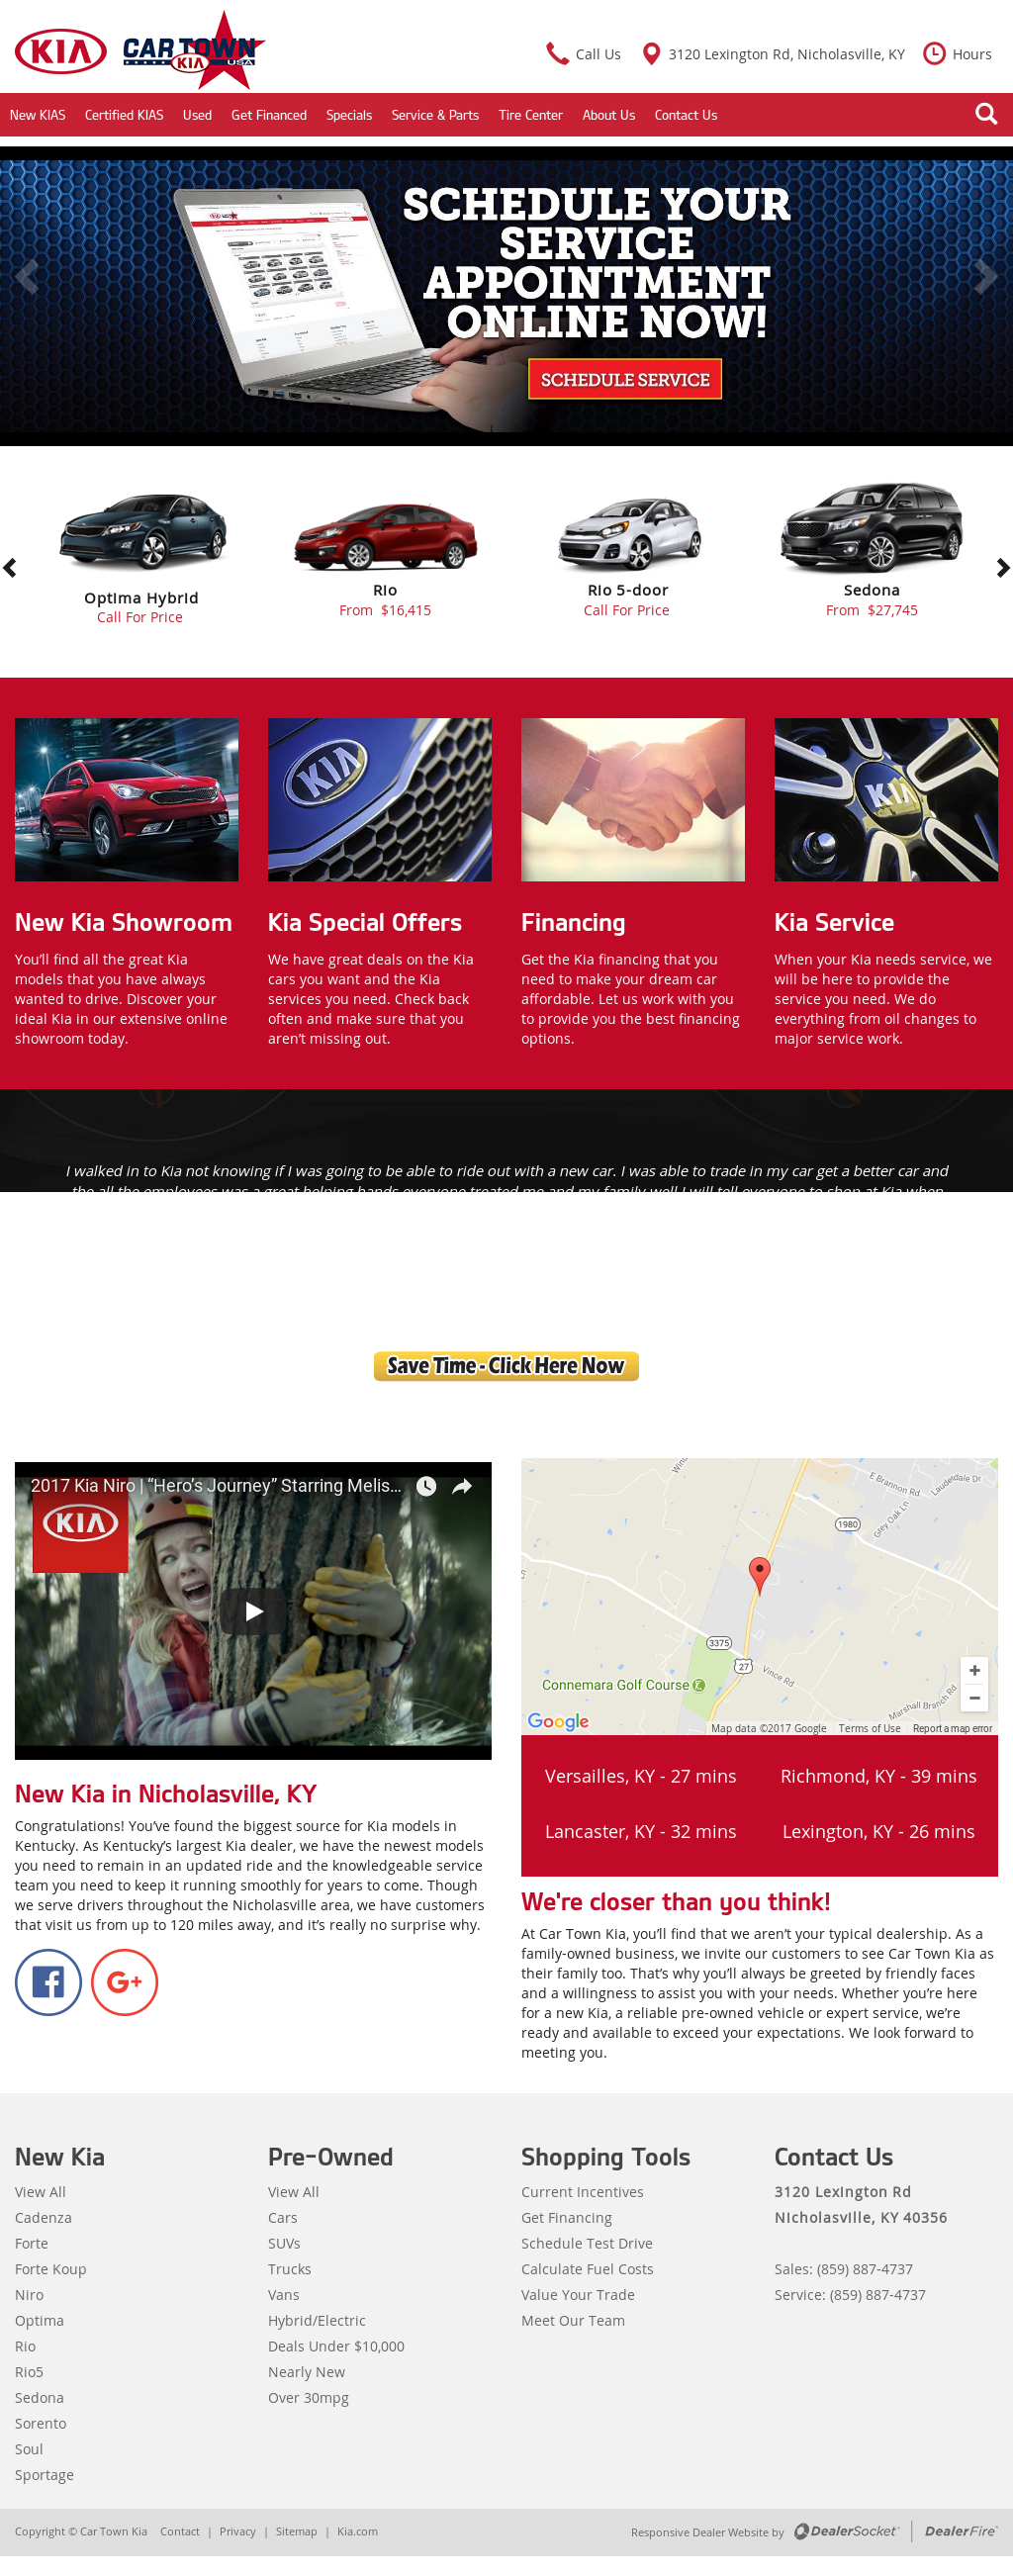 Car Town Kia USA Website History